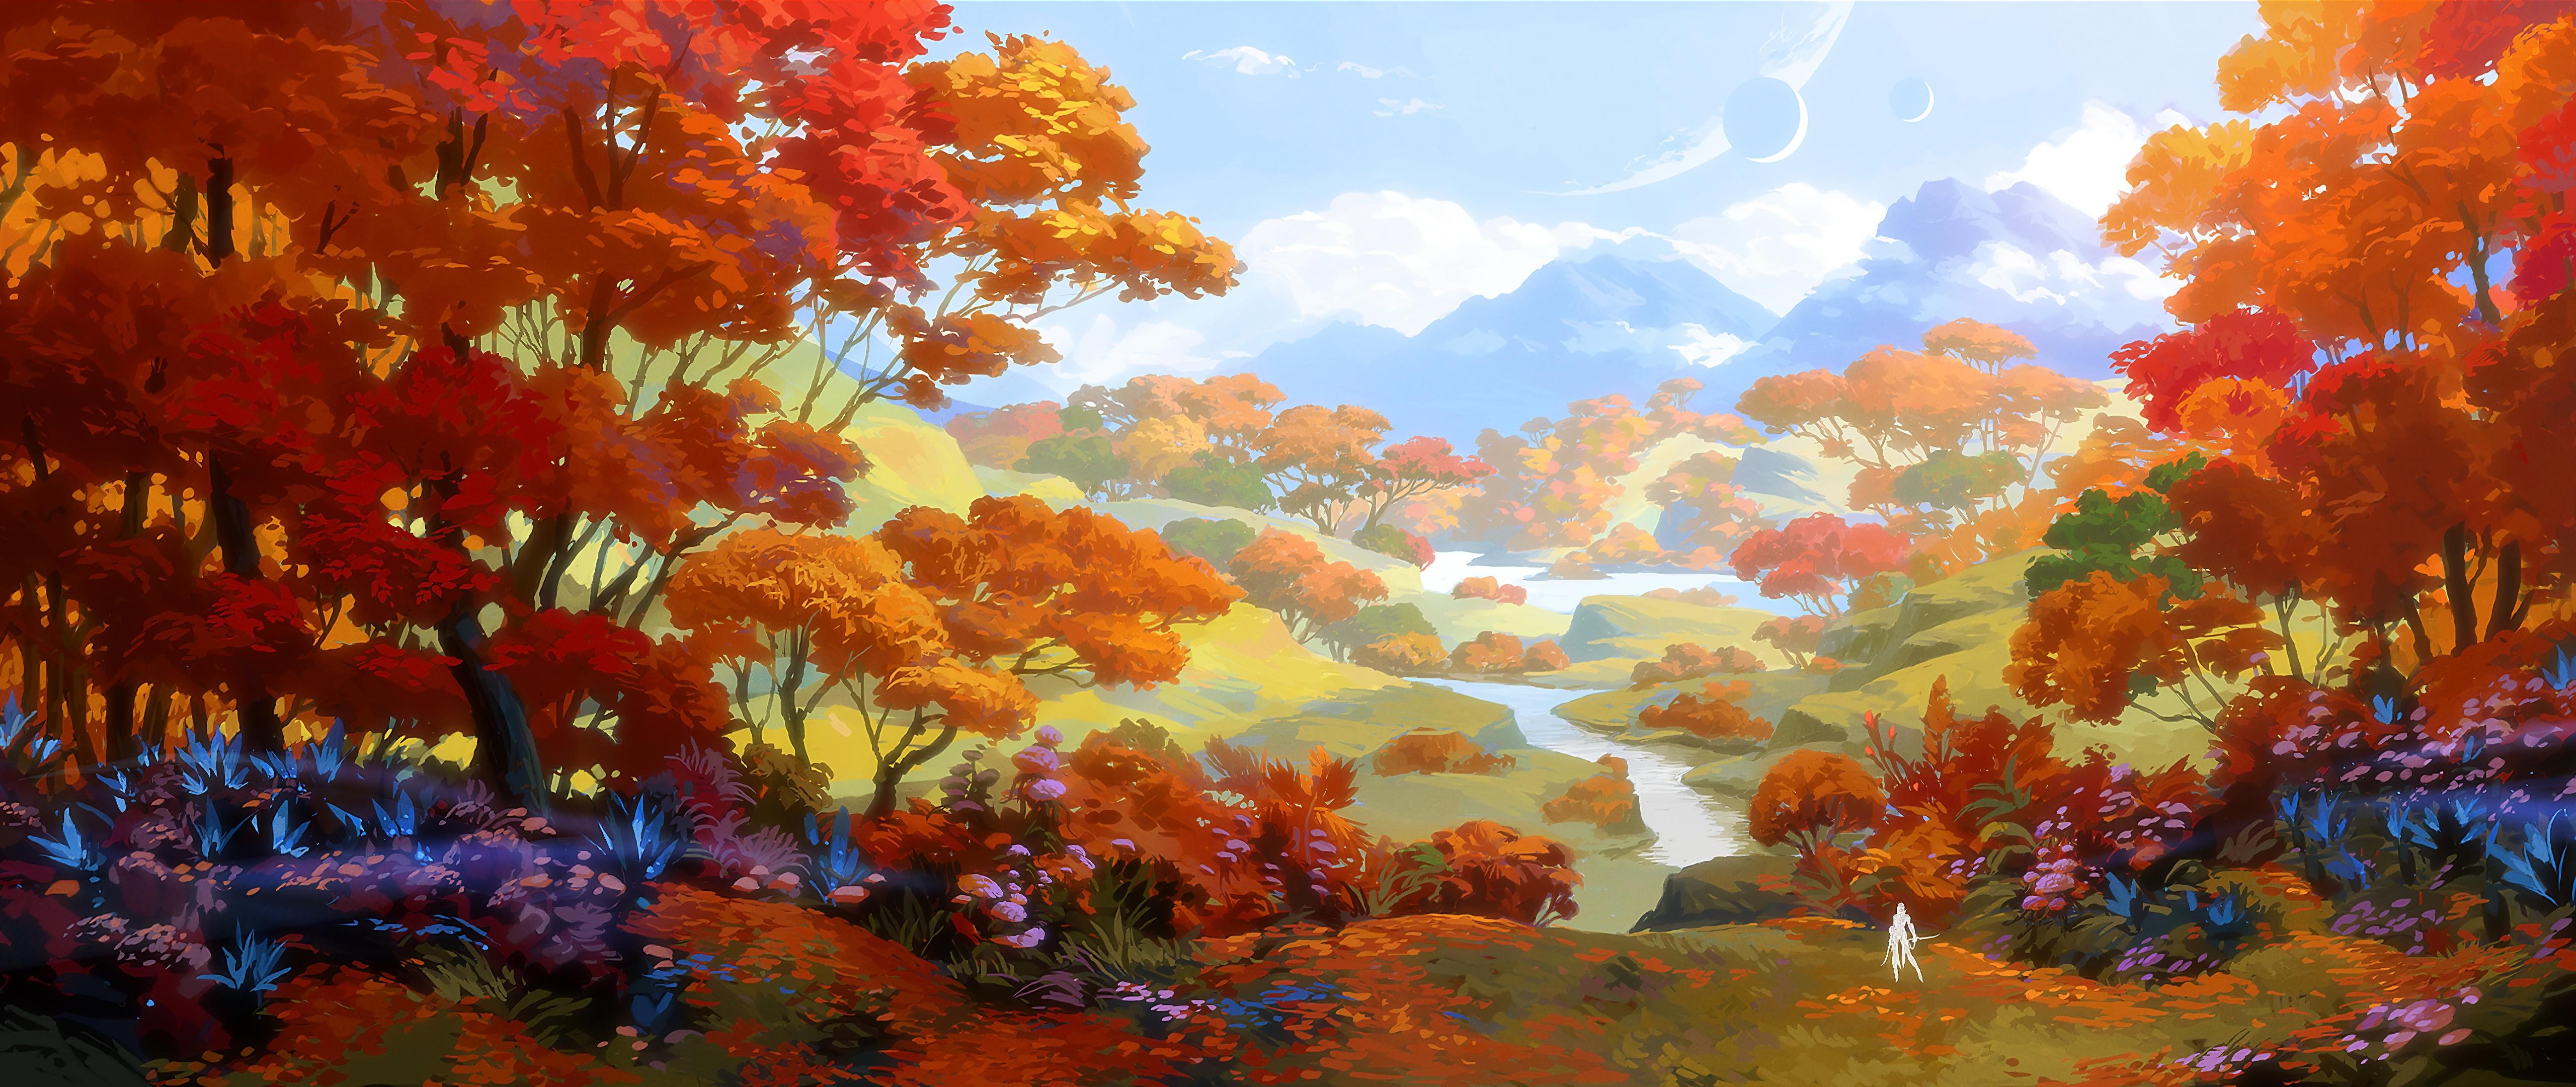 General 5120x2160 digital digital art artwork illustration drawing digital painting environment nature seasons fall landscape trees forest fantasy art planet water mountains clouds sky skyscape concept art outdoors